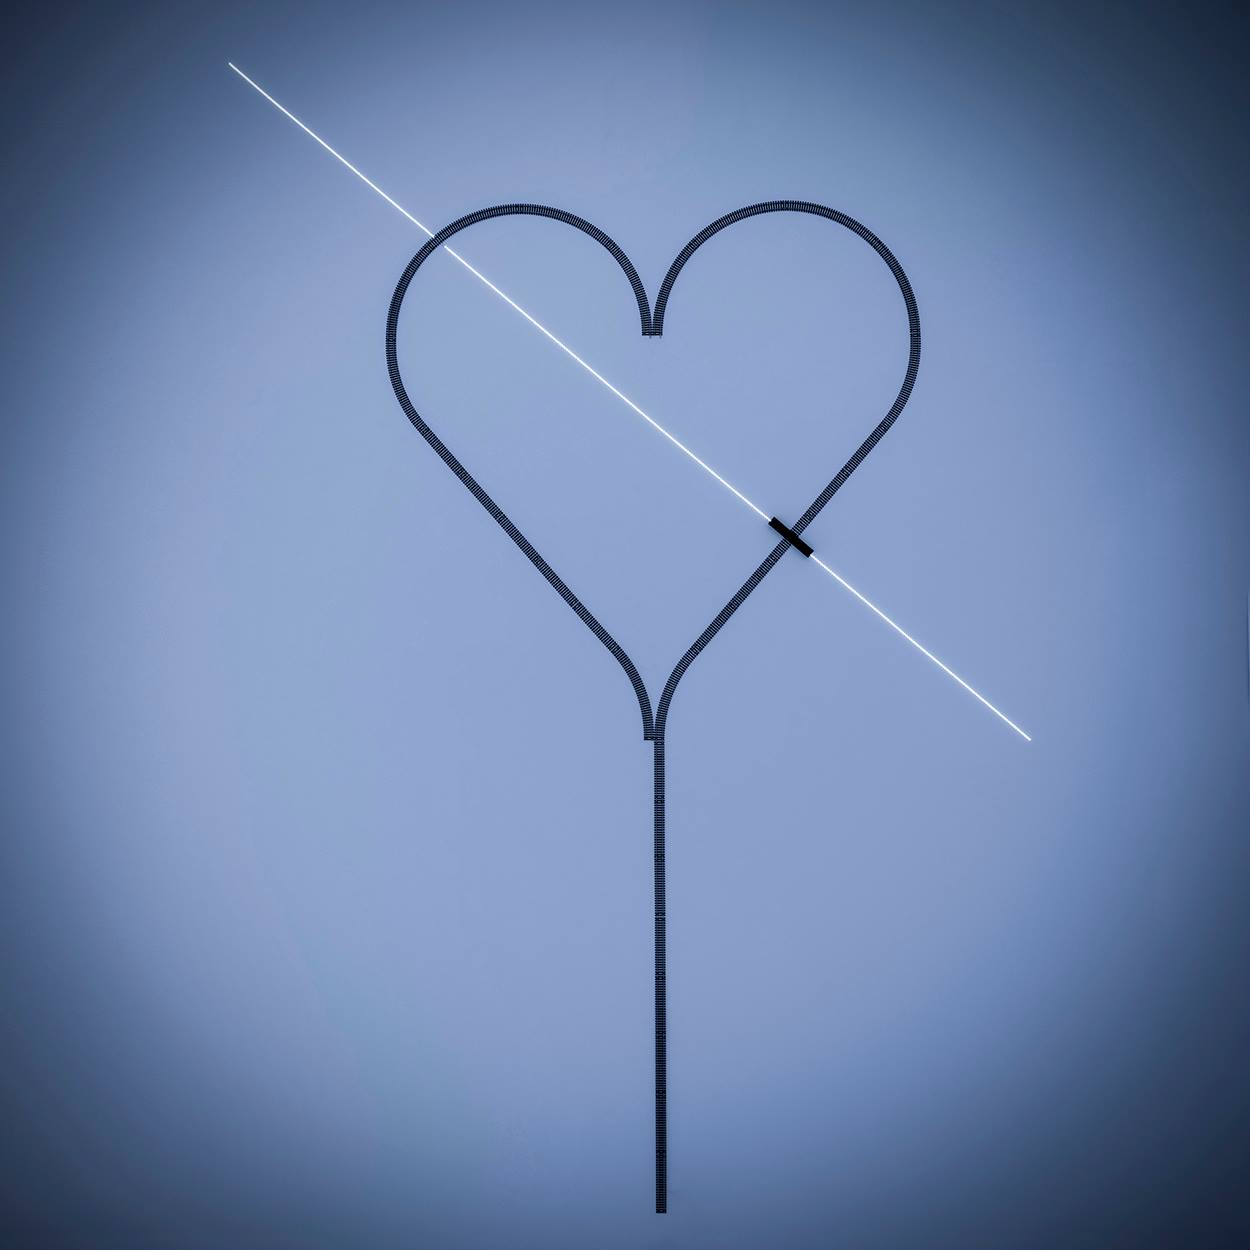 blue background with black heart outline with ray of light striking through horizontally